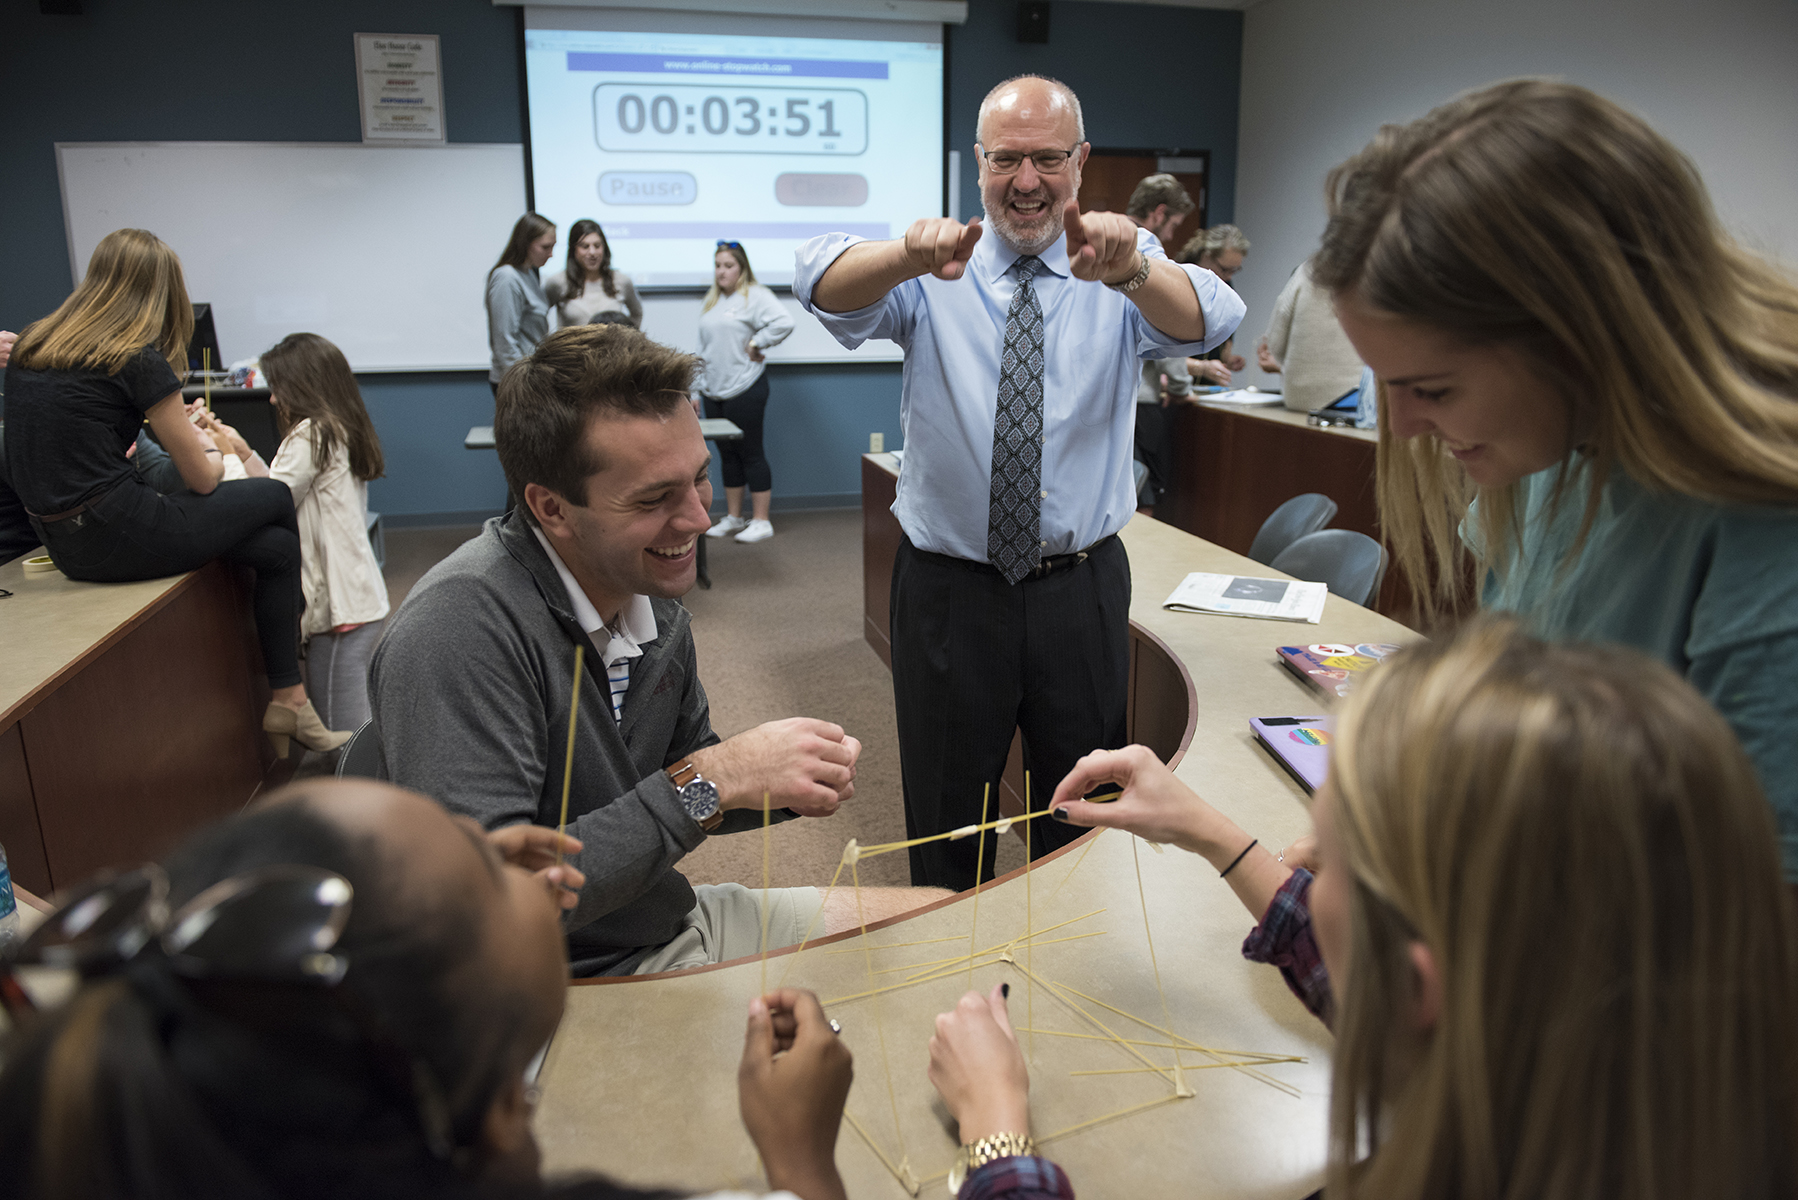 Business professor Rob Moorman laughs with his students as they compete to build the largest tower of tape, string, spaghetti and marshmallows.